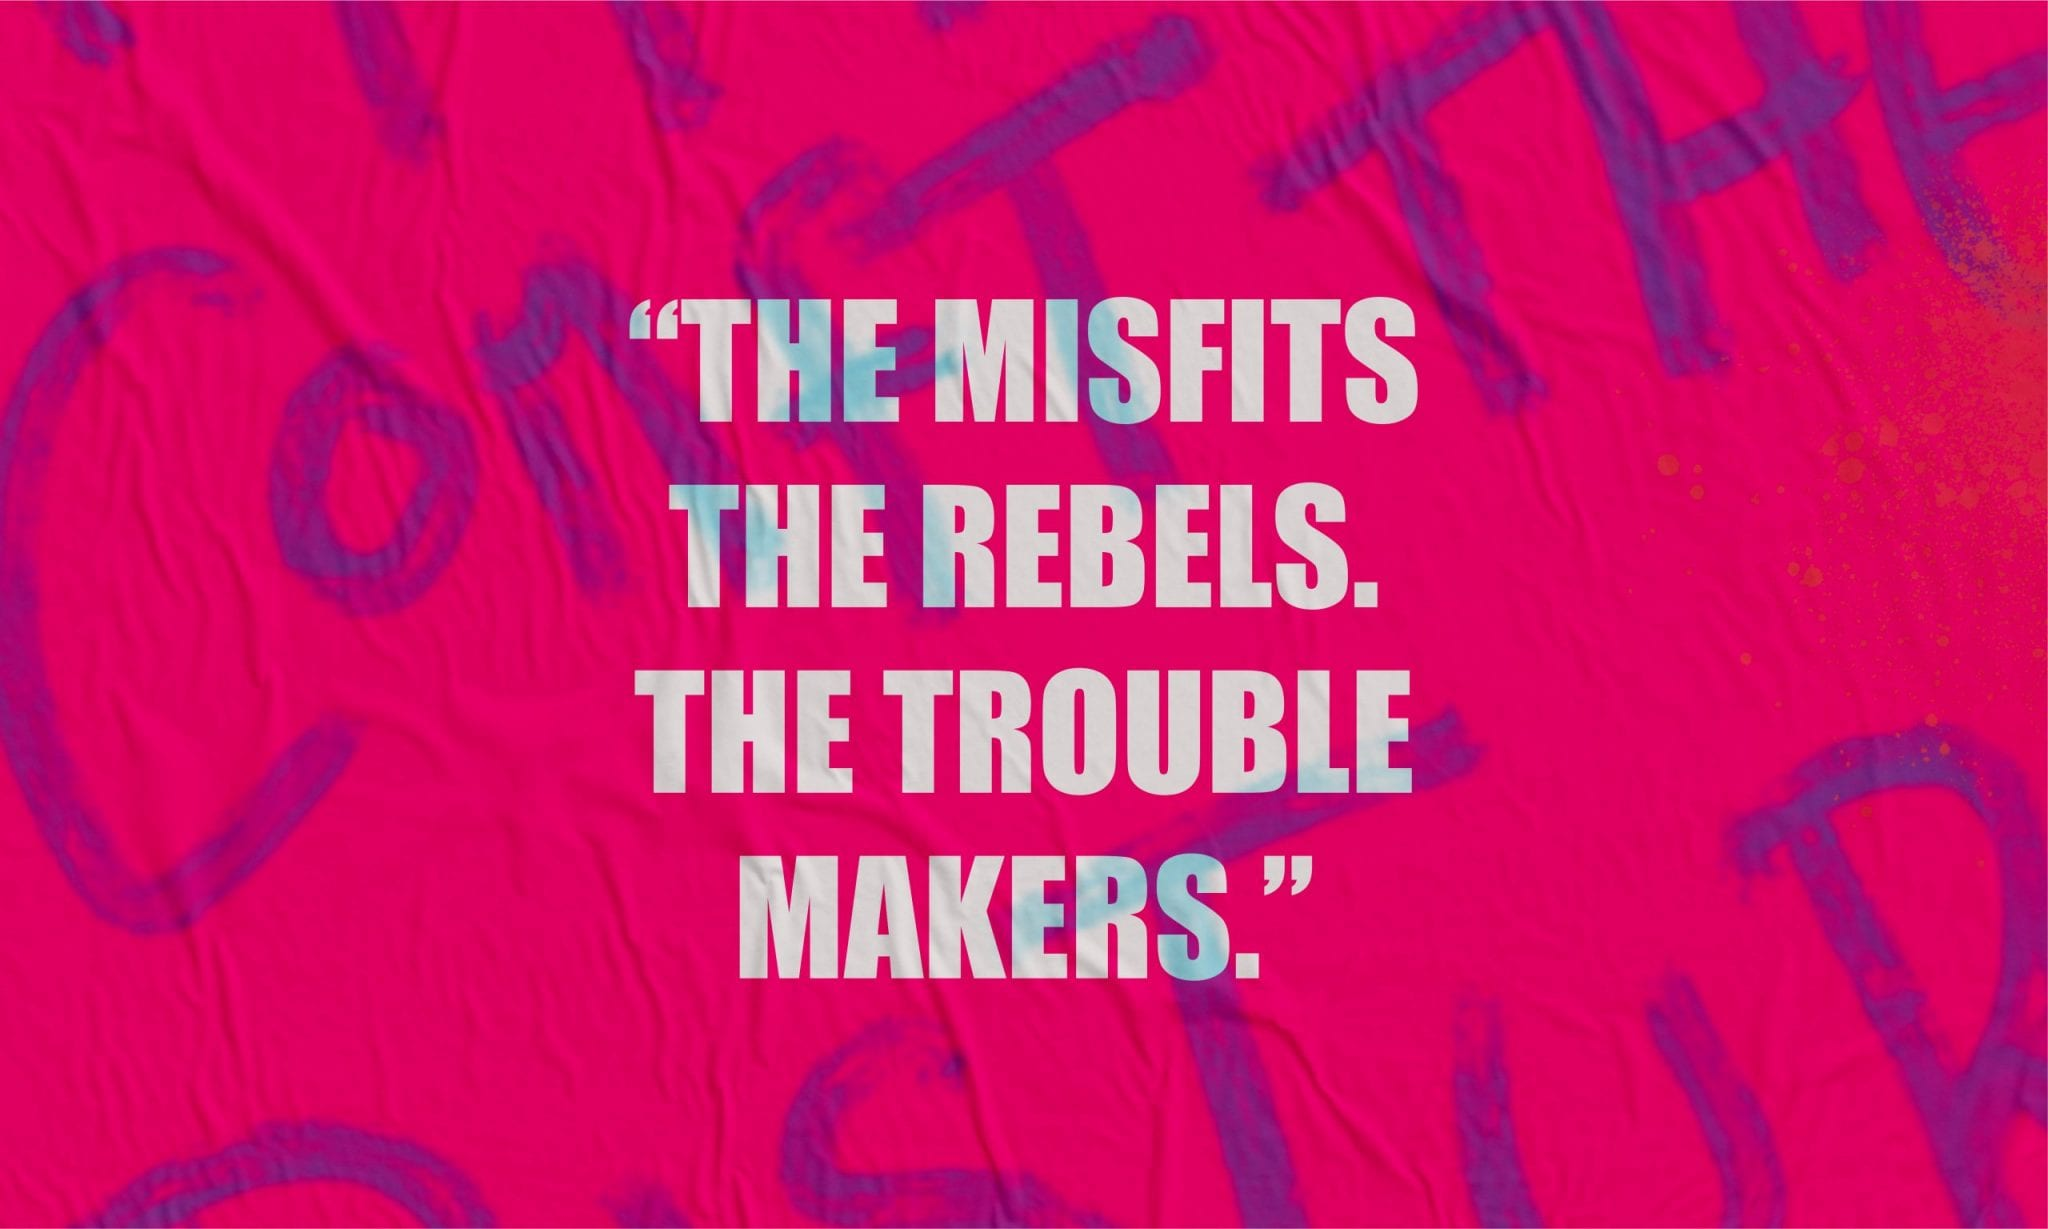 the misfits the rebels